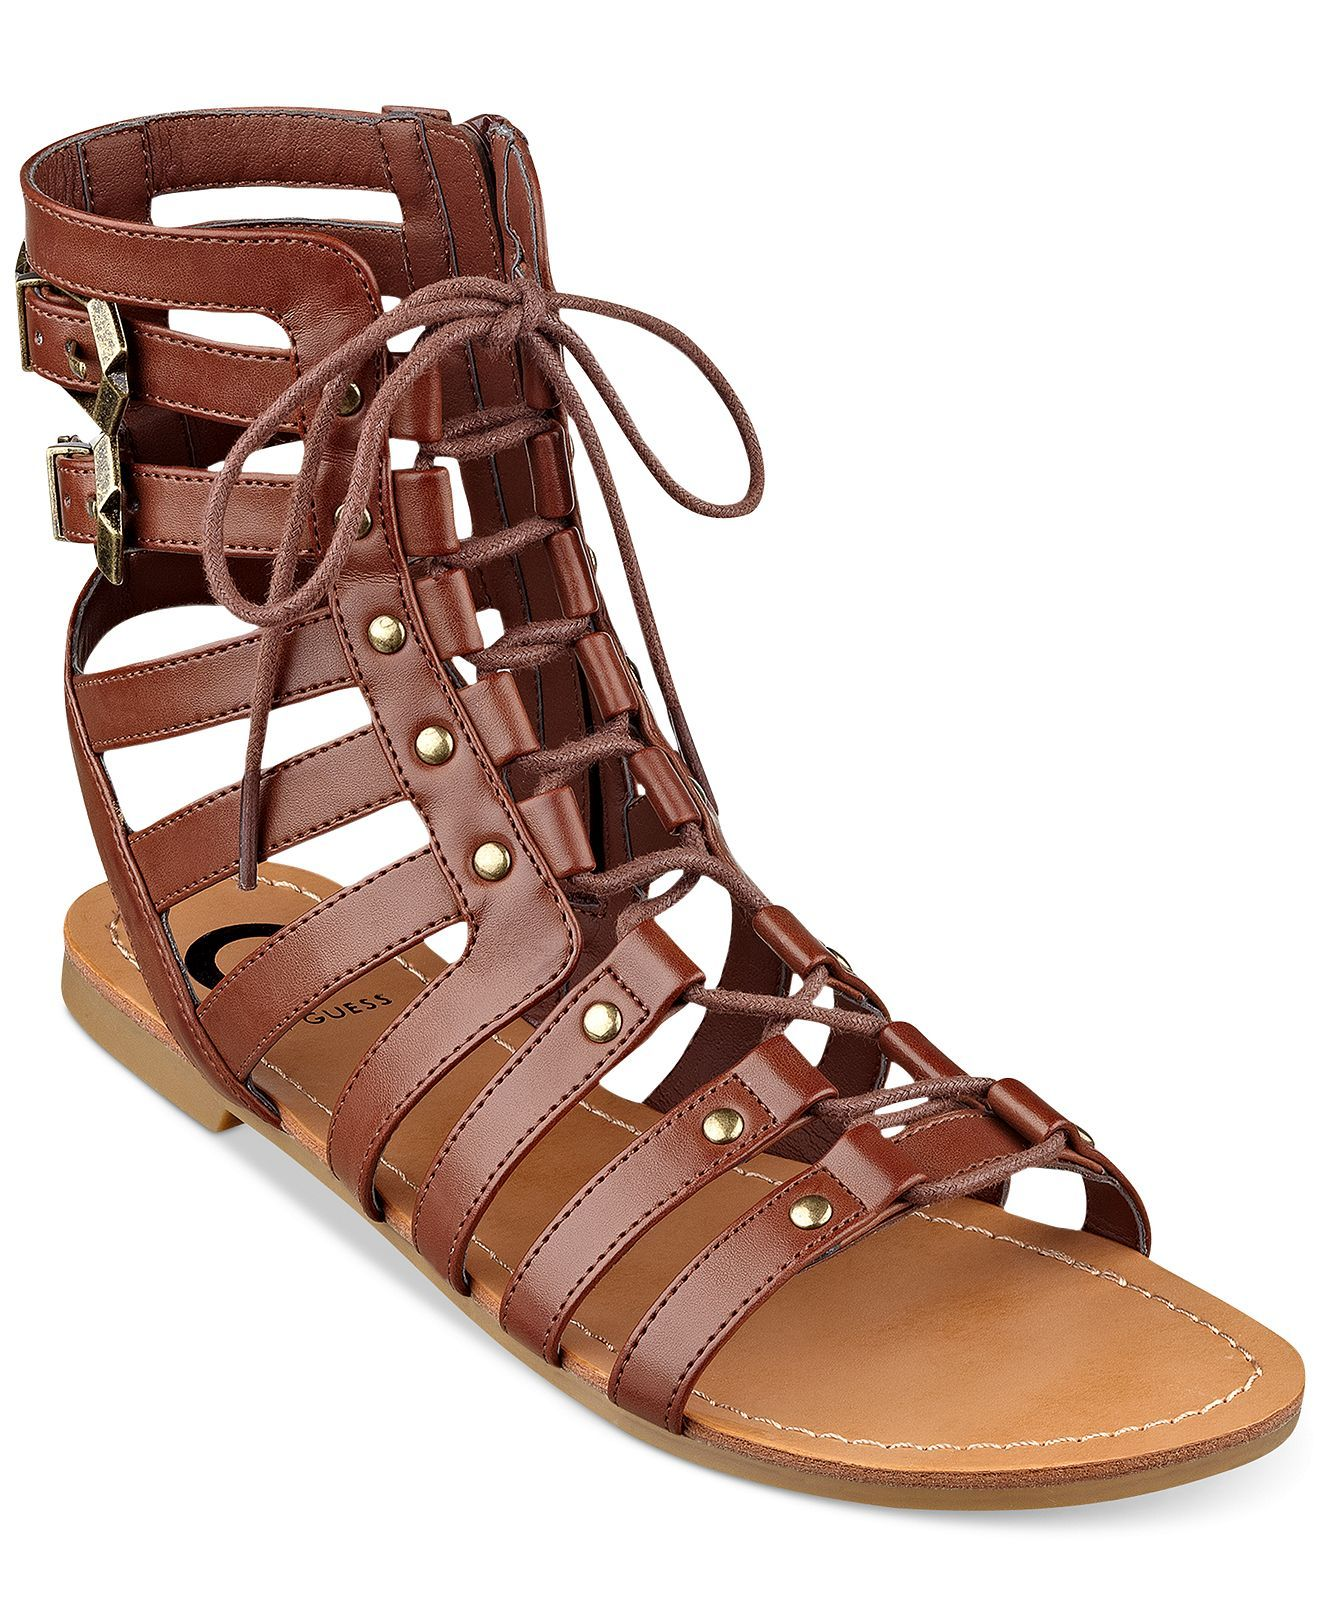 6320c90281e3 G by GUESS Women s Holmes Gladiator Sandals - Shoes - Macy s ...